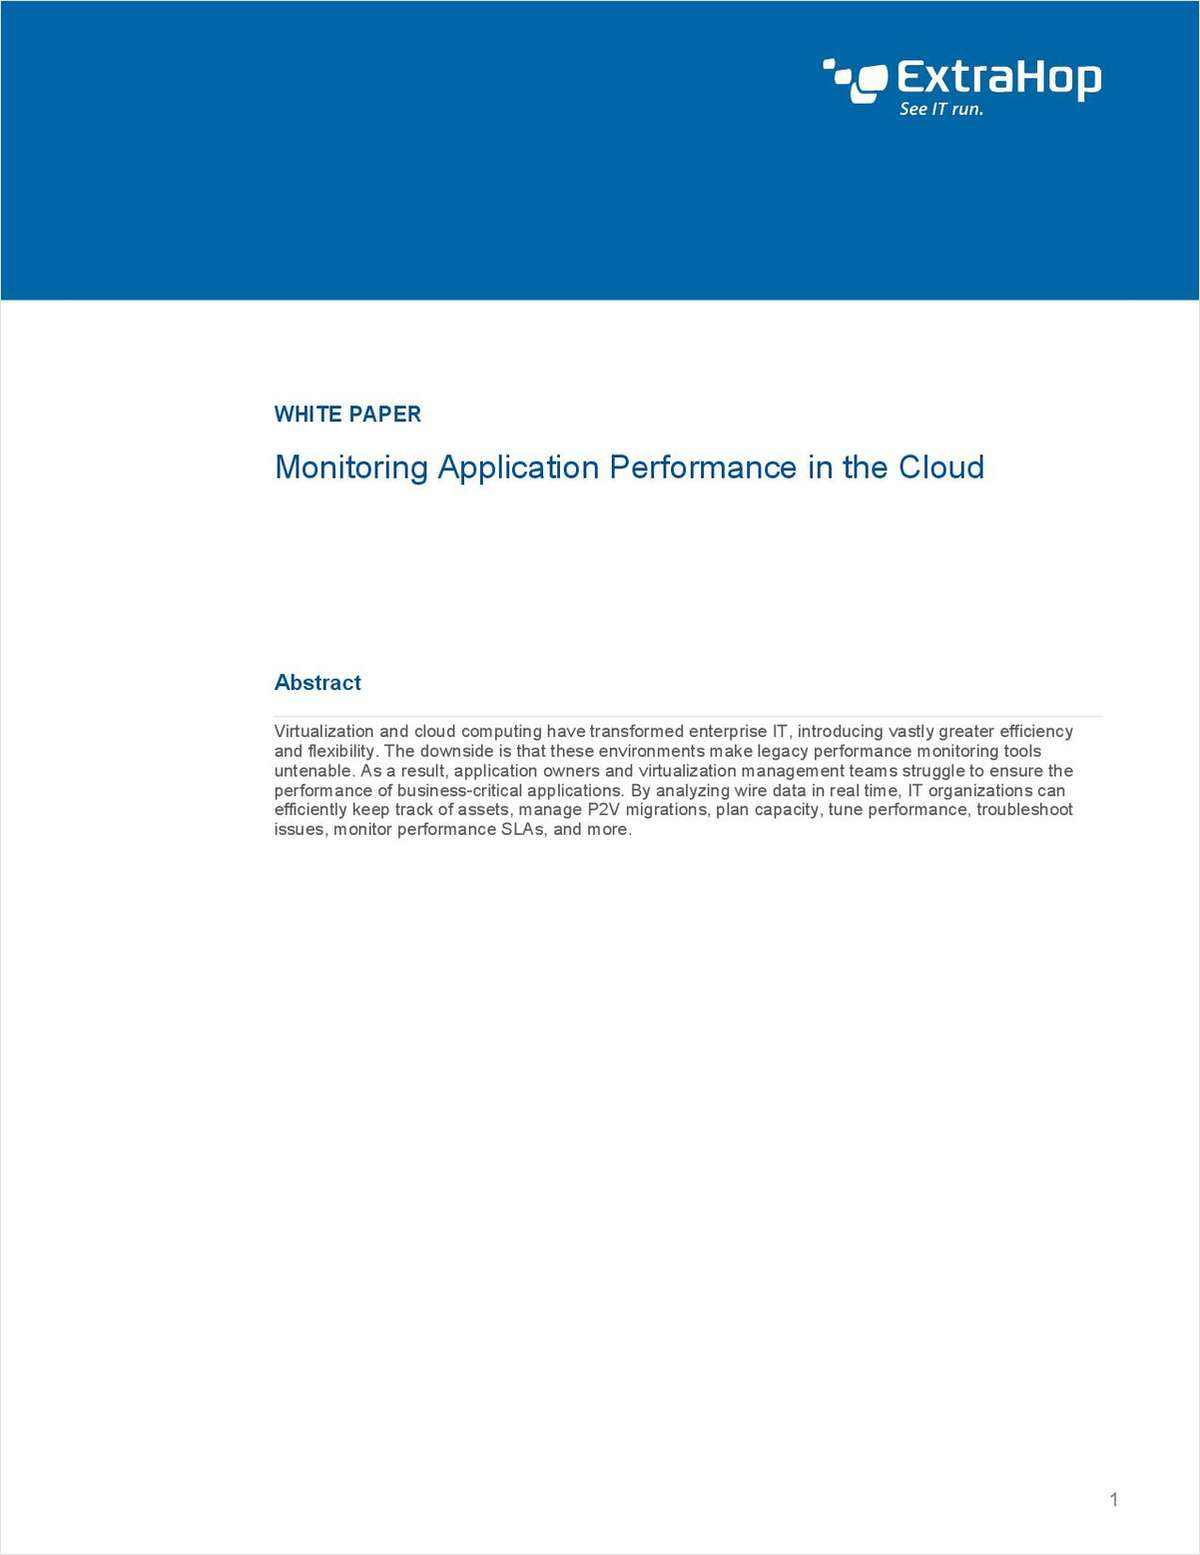 Monitor Application Performance in Virtualized and Cloud Environments